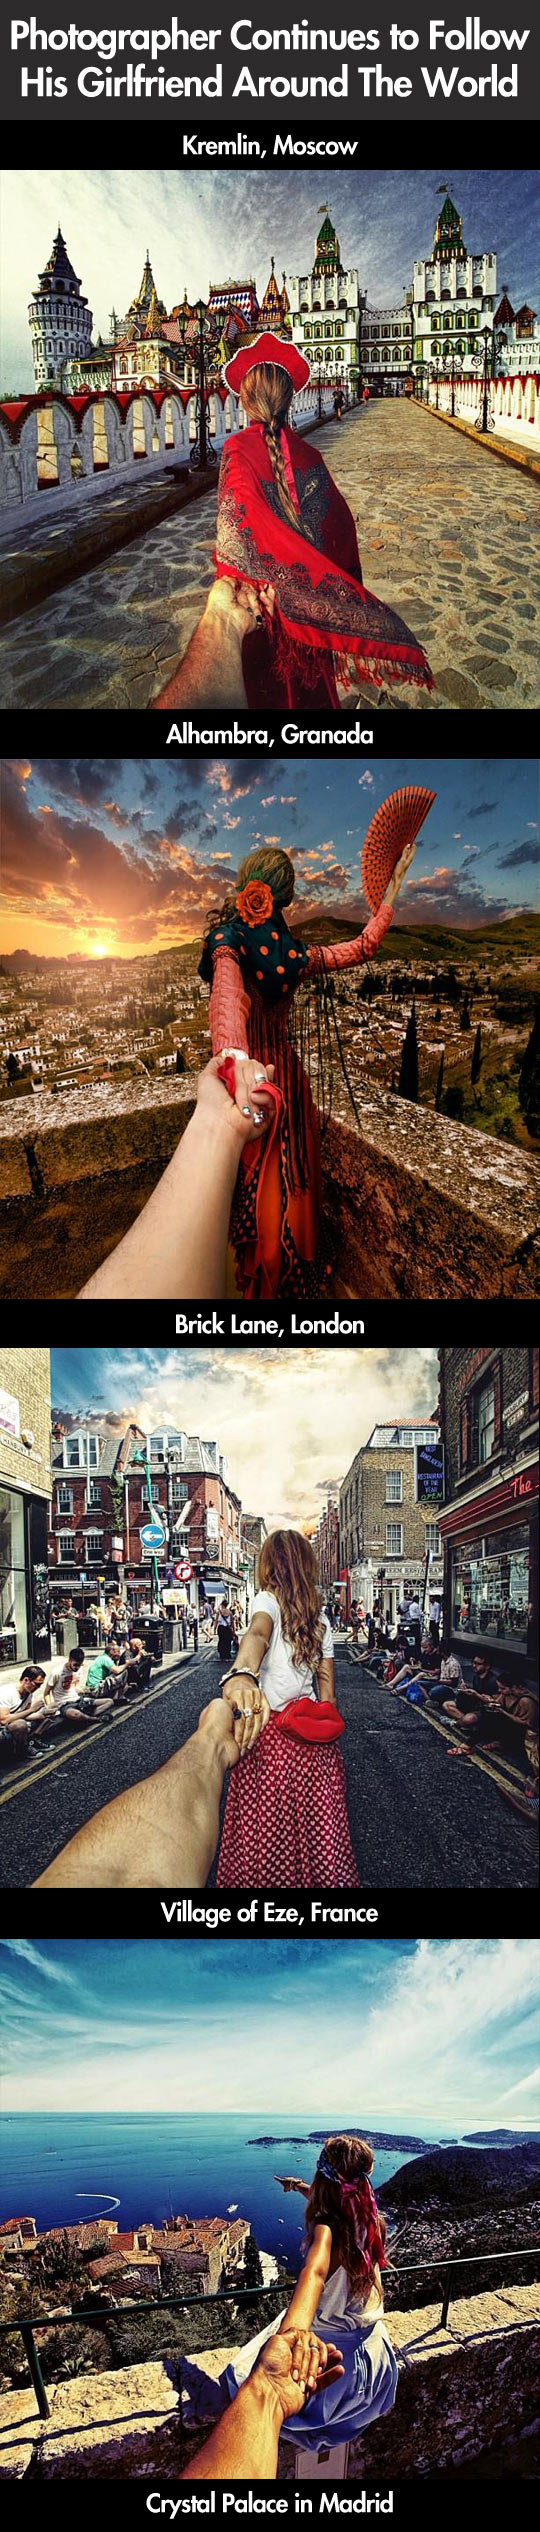 Photographer follows his girlfriend around the world...